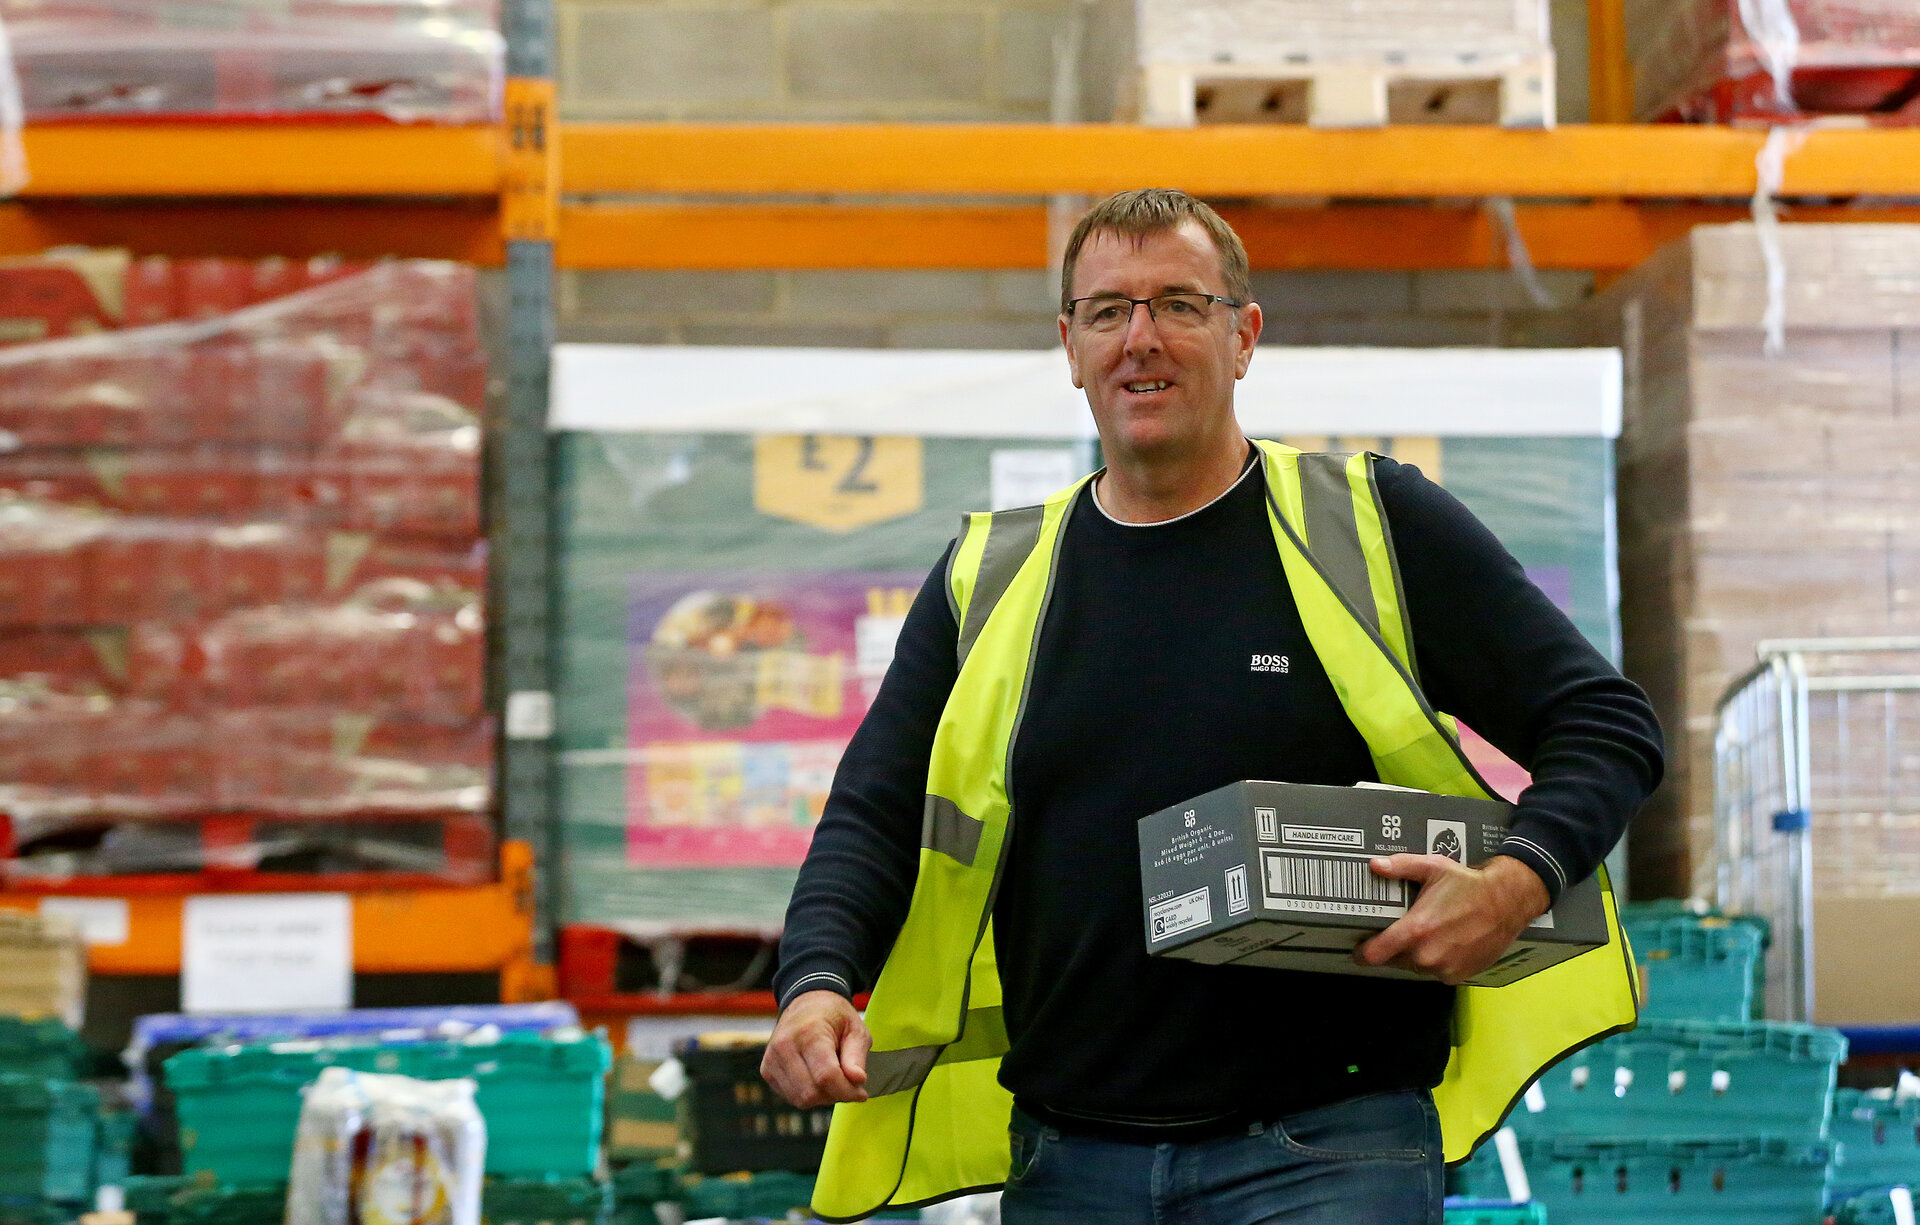 SOUTHAMPTON, ENGLAND - APRIL 06: Former Southampton FC player and current club ambassador Matt Le Tissier volunteers at local food distribution centre FareShare, on April 06, 2020 in Southampton, England. (Photo by Matt Watson/Southampton FC via Getty Images)